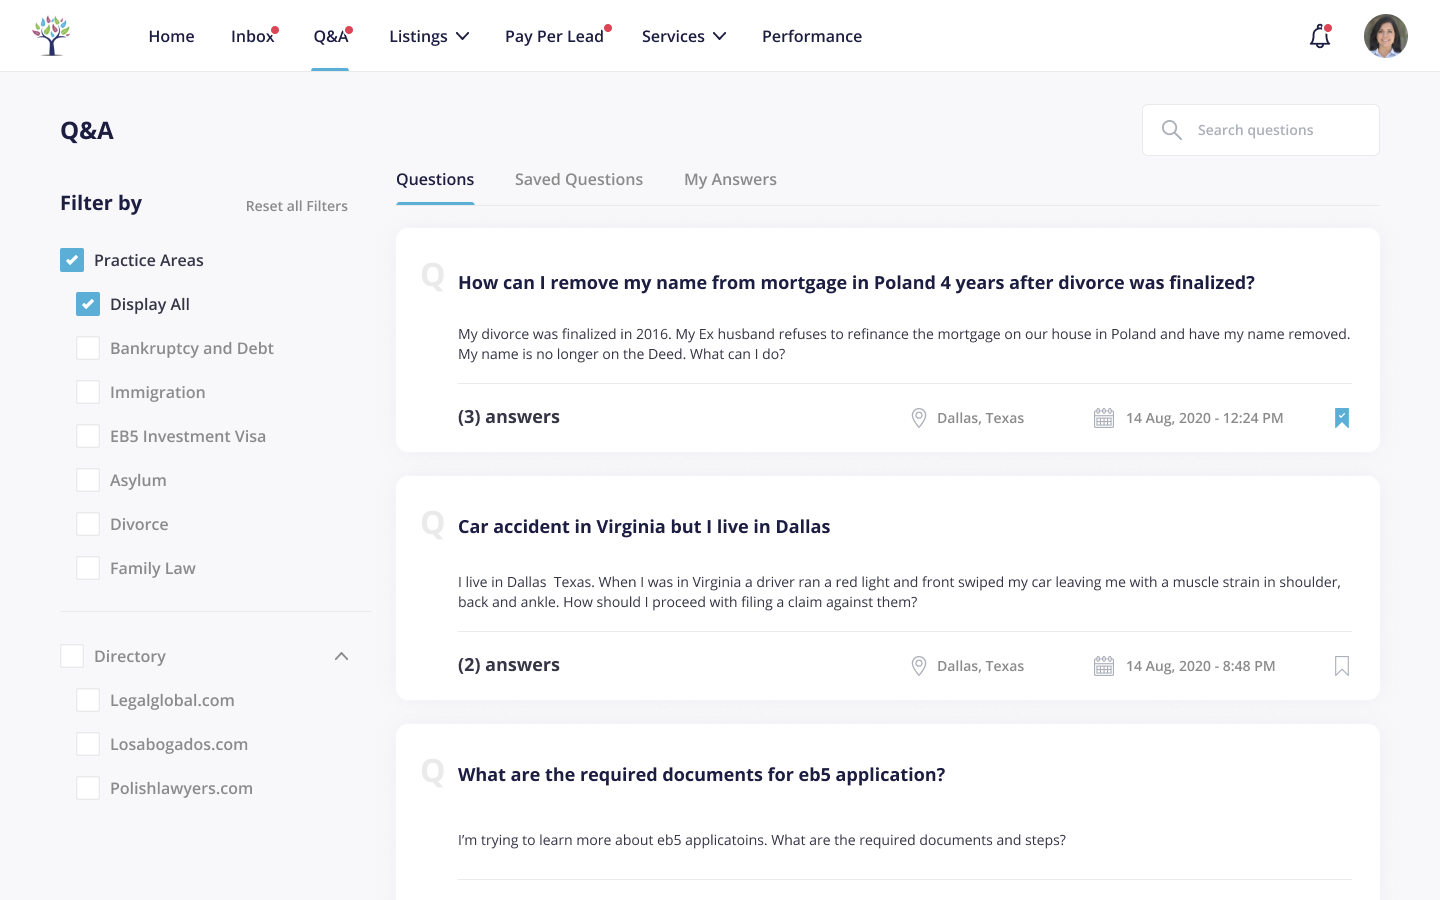 Dashboard - Questions and Answers